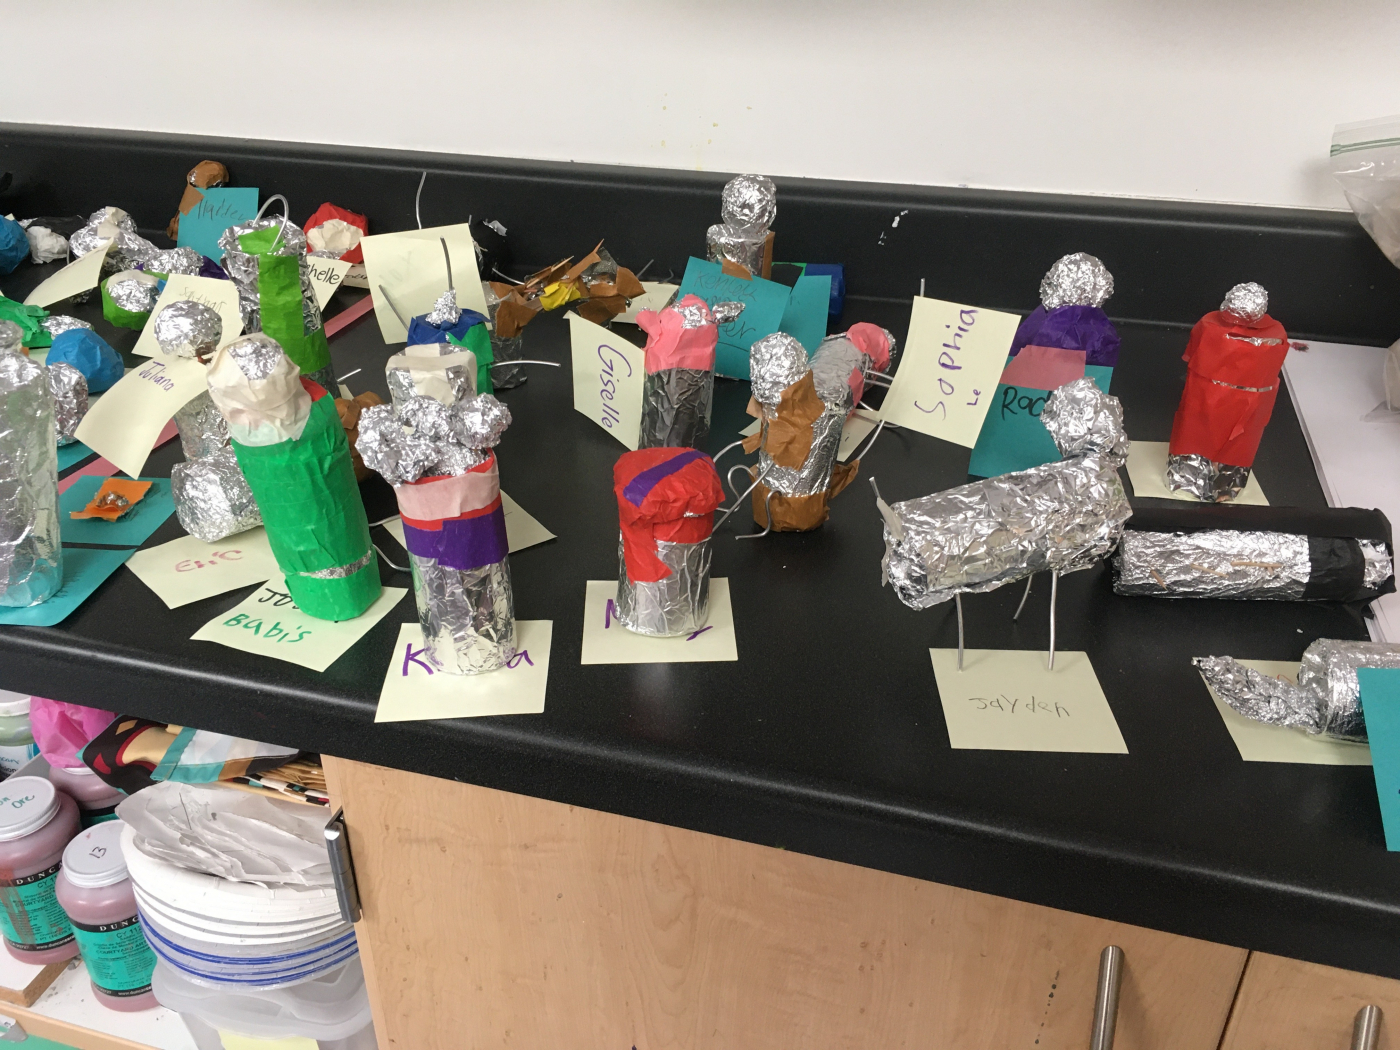 Sculptures by Laura Decker's Monticello Academy students, prior to distance learning